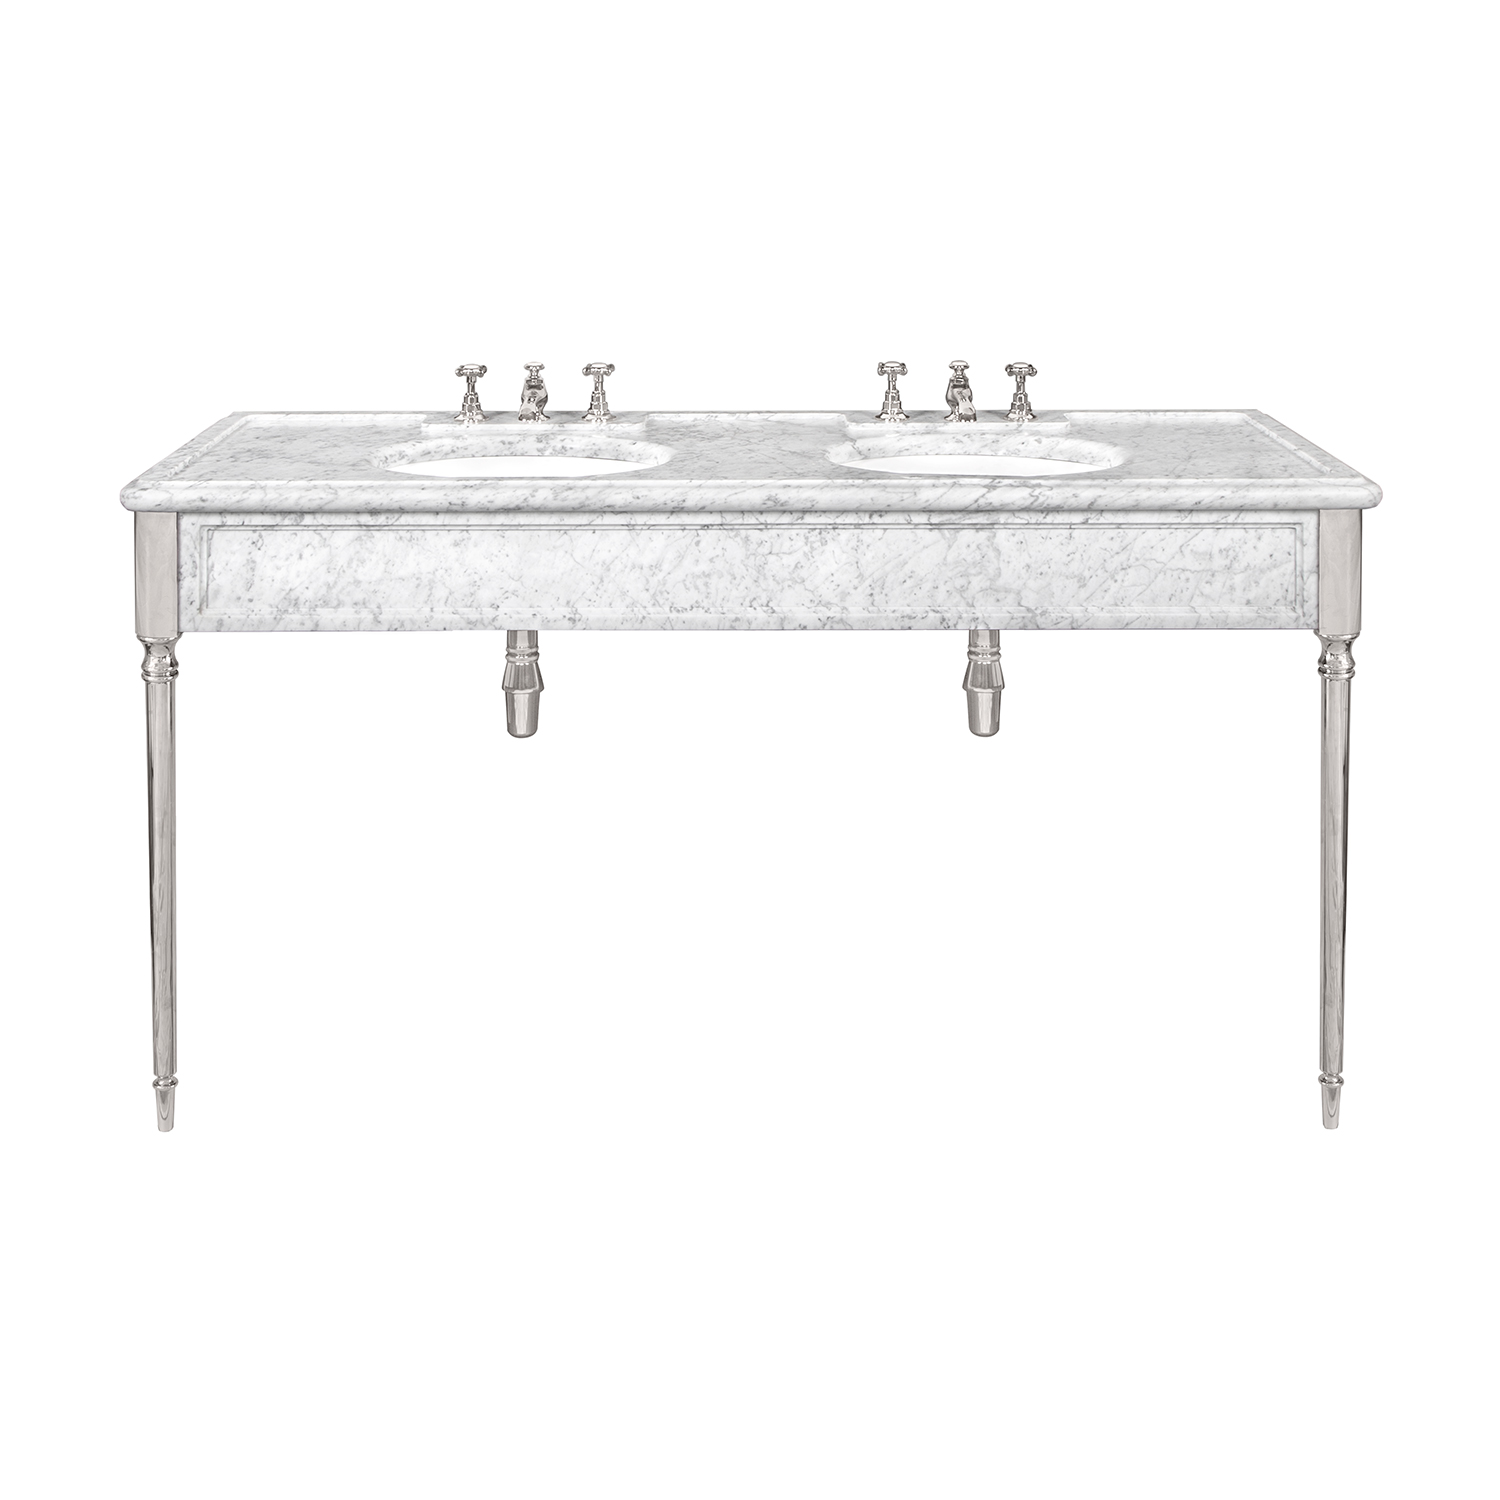 LB 6434 WH Edwardian double Carrara marble console